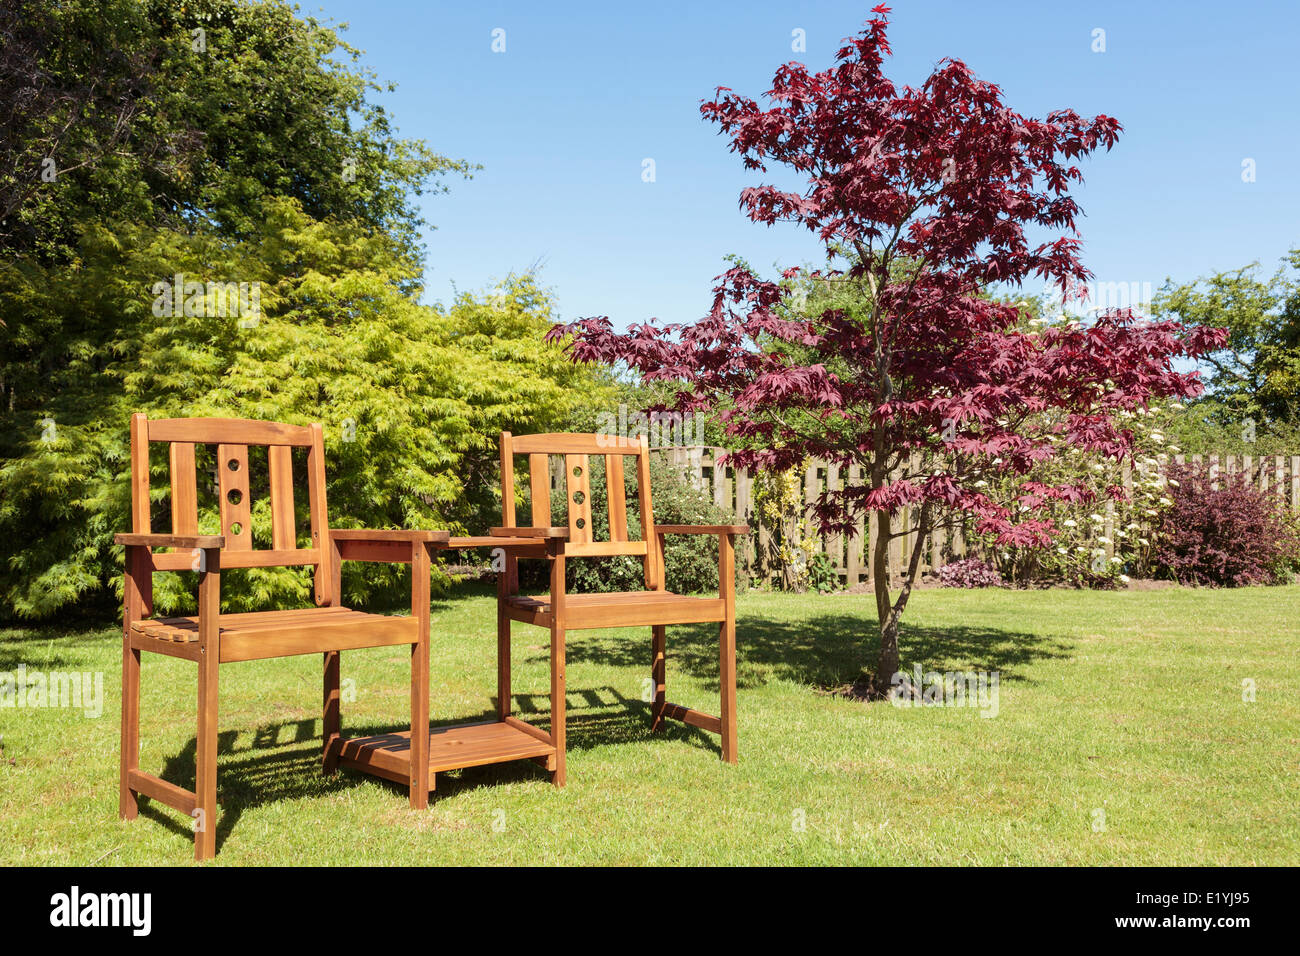 Garden chairs gt ascot teak garden companion seat bench garden tete - Wooden Companion Seat Or Love Bench With A Table Between Two Seats